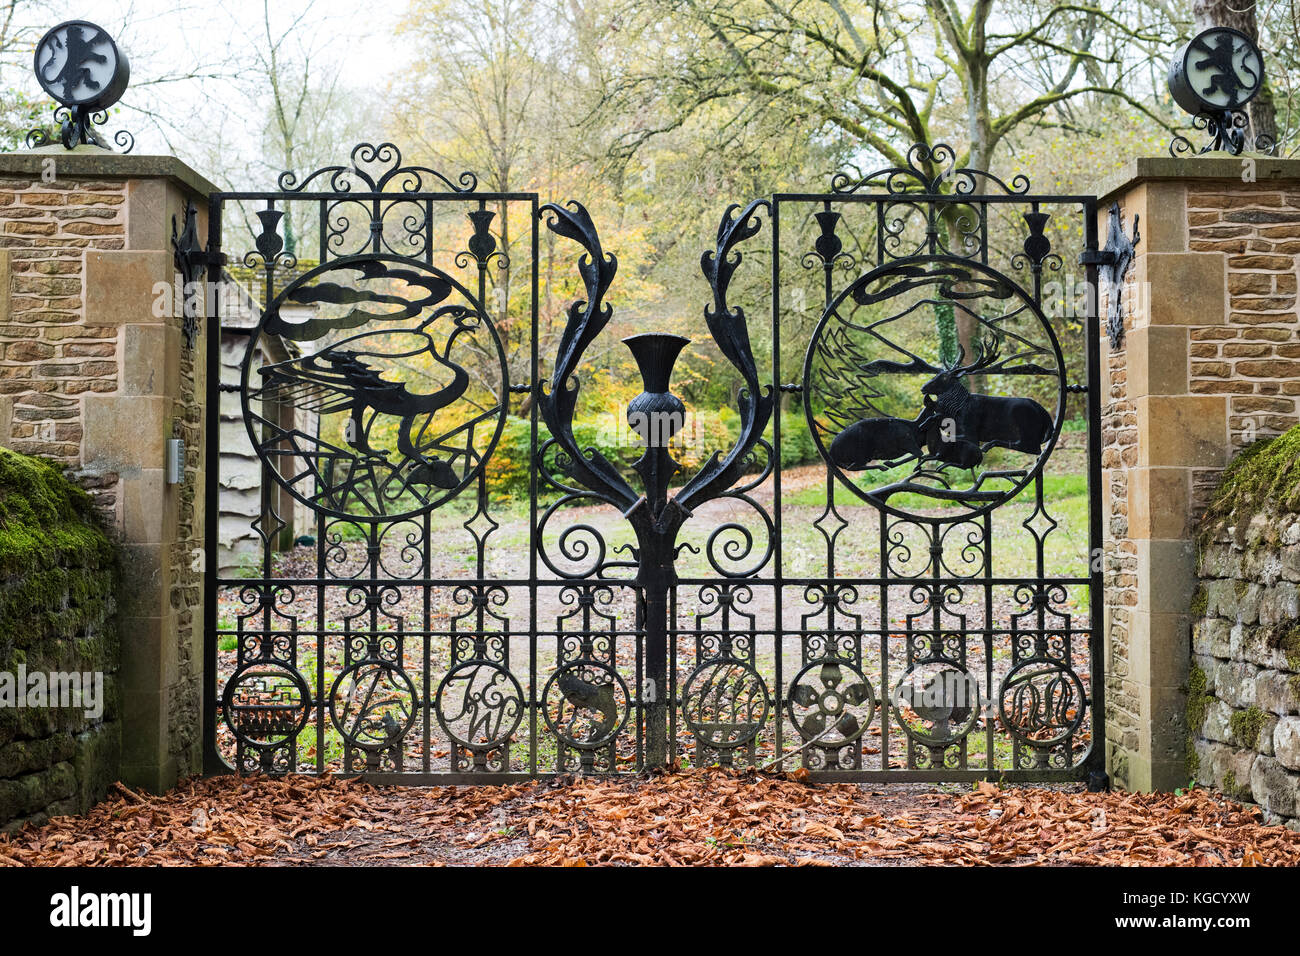 wrought iron gates driveway stock photos wrought iron. Black Bedroom Furniture Sets. Home Design Ideas